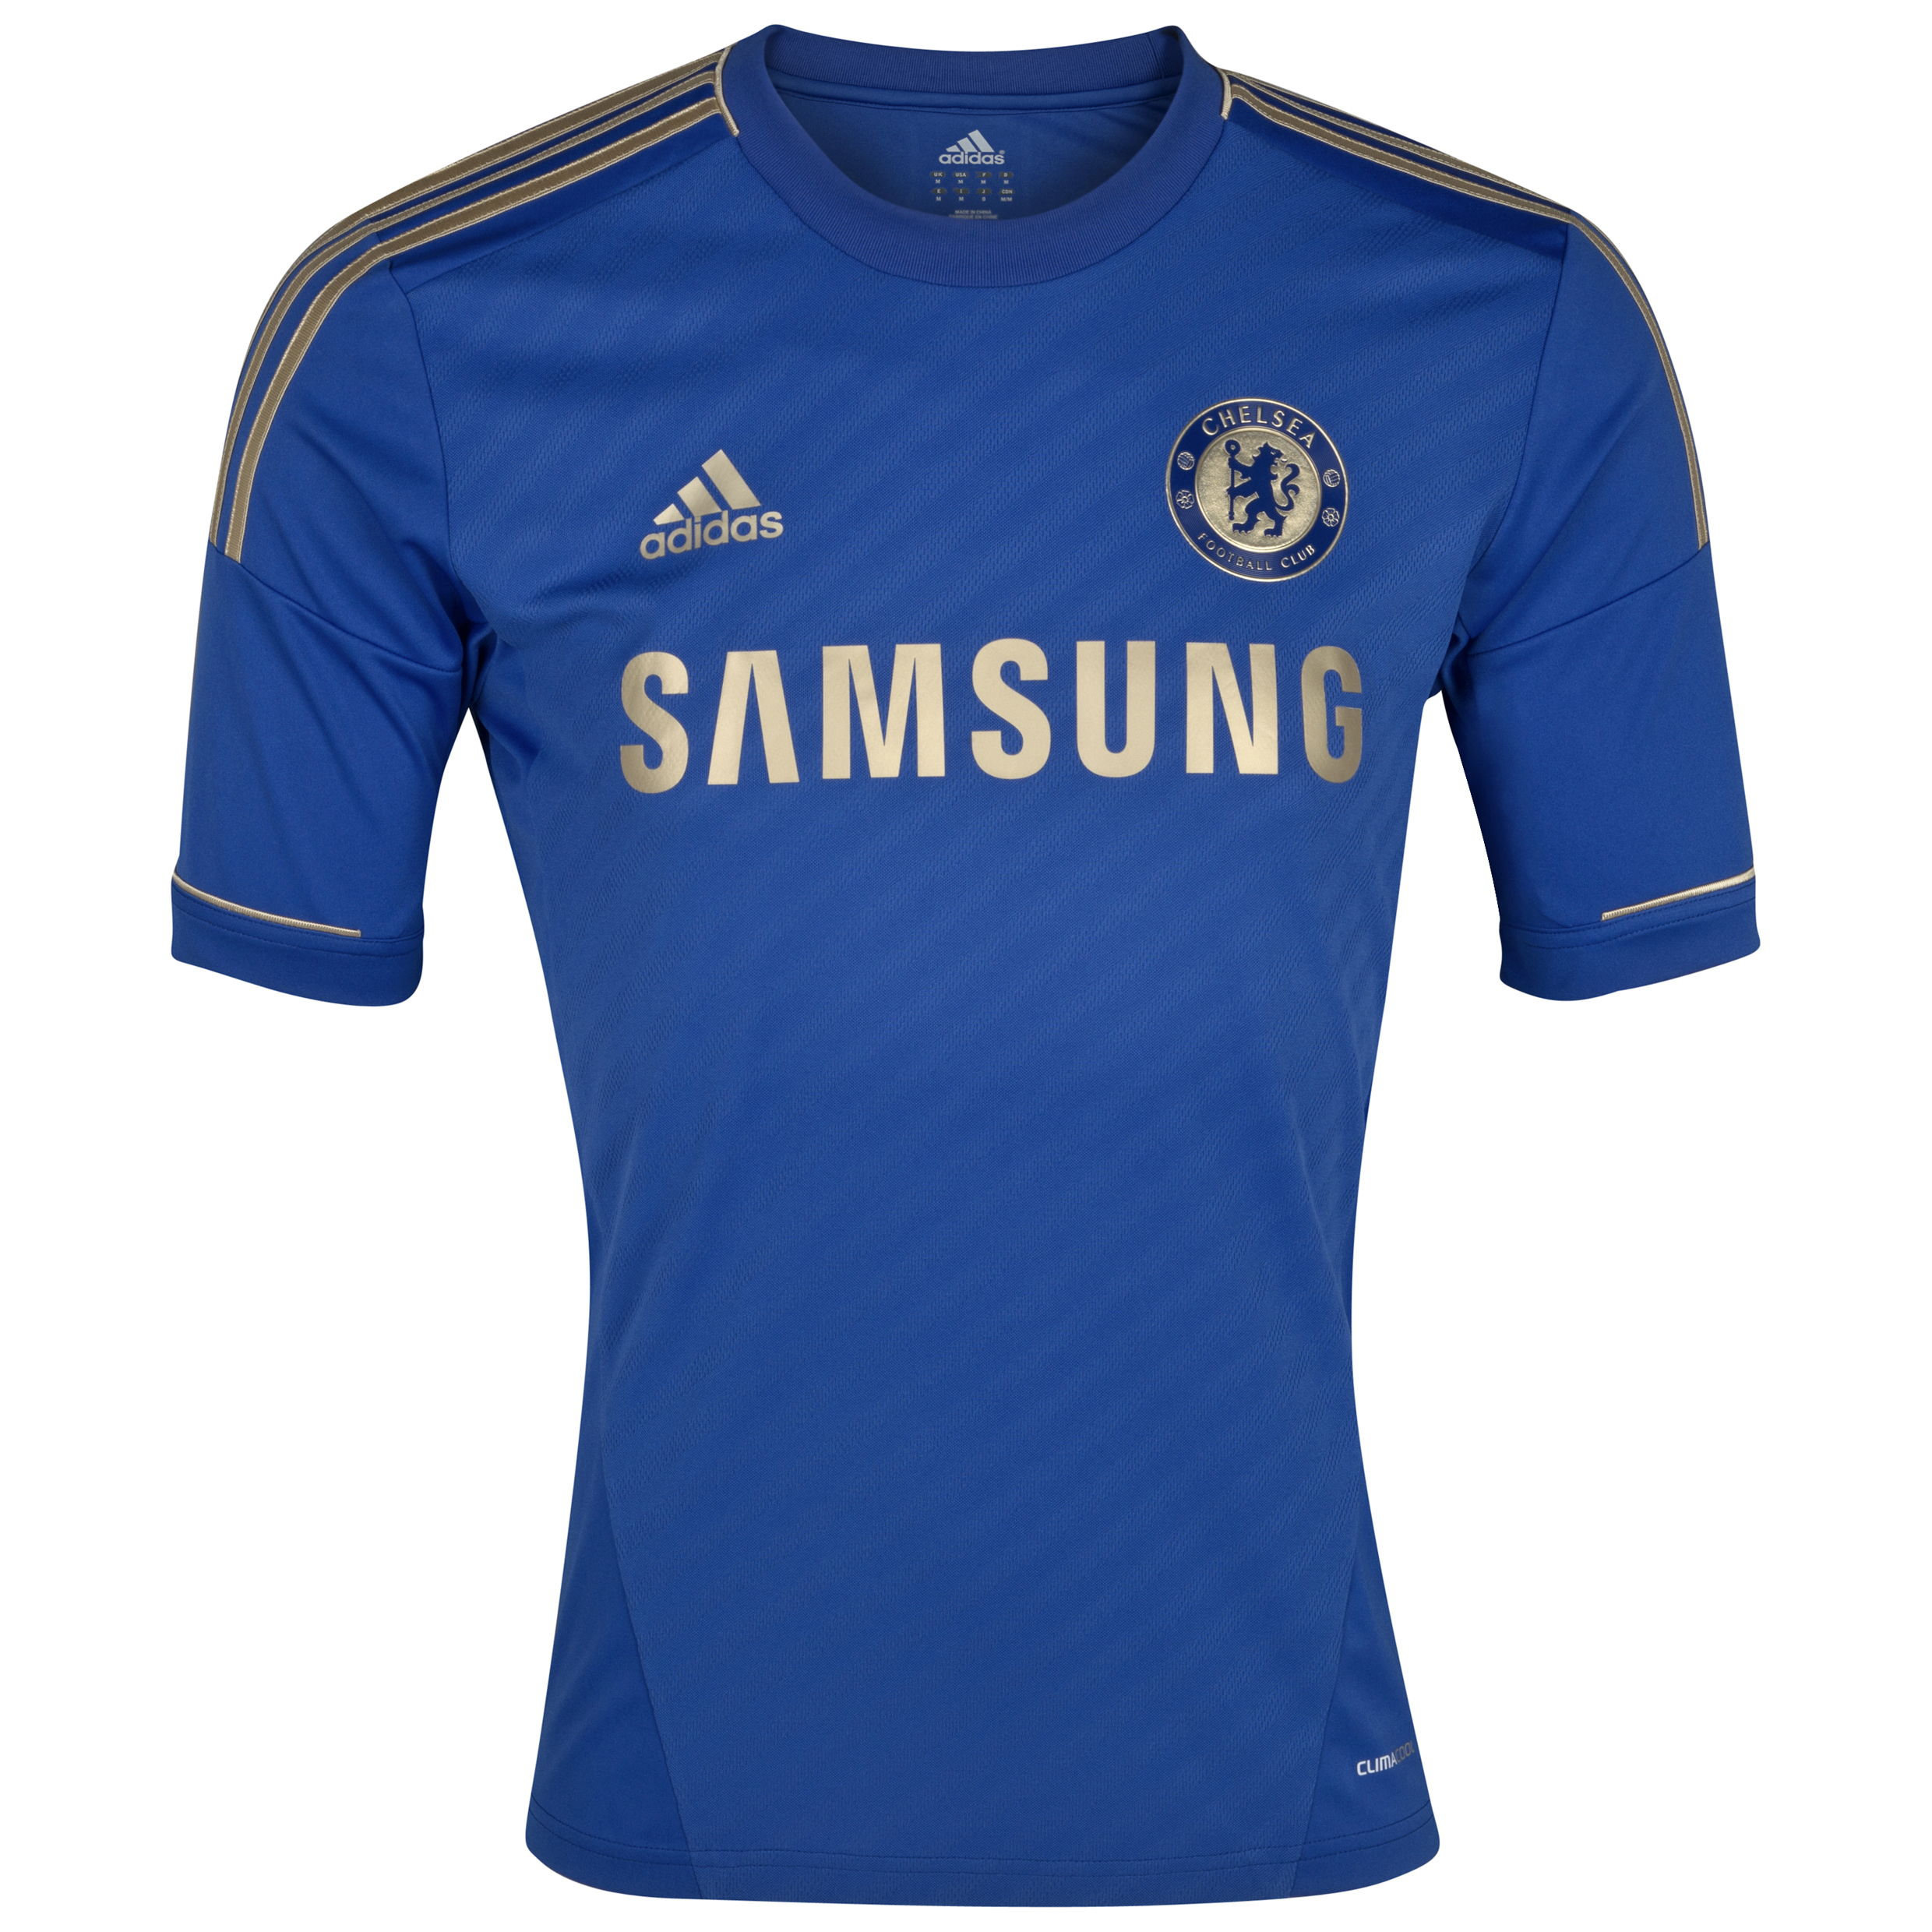 Chelsea Home Shirt 2012/13 - Youths